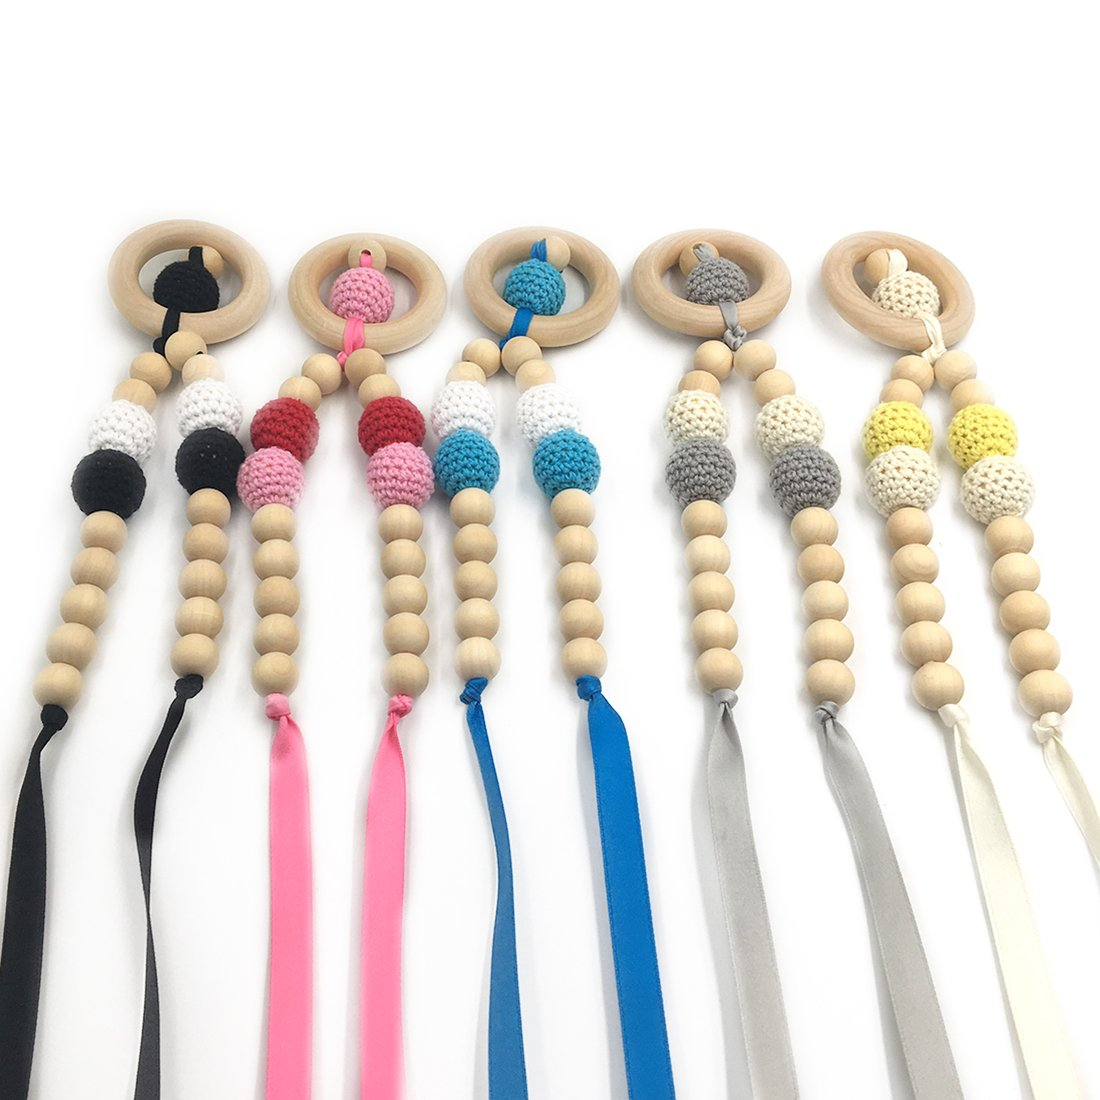 Amyster 5pcs Crochet Beads Baby Teether Necklace Beads Safe Teething Necklace With Organic Natural Wood Toy Mom Kids Wooden Teether Necklace